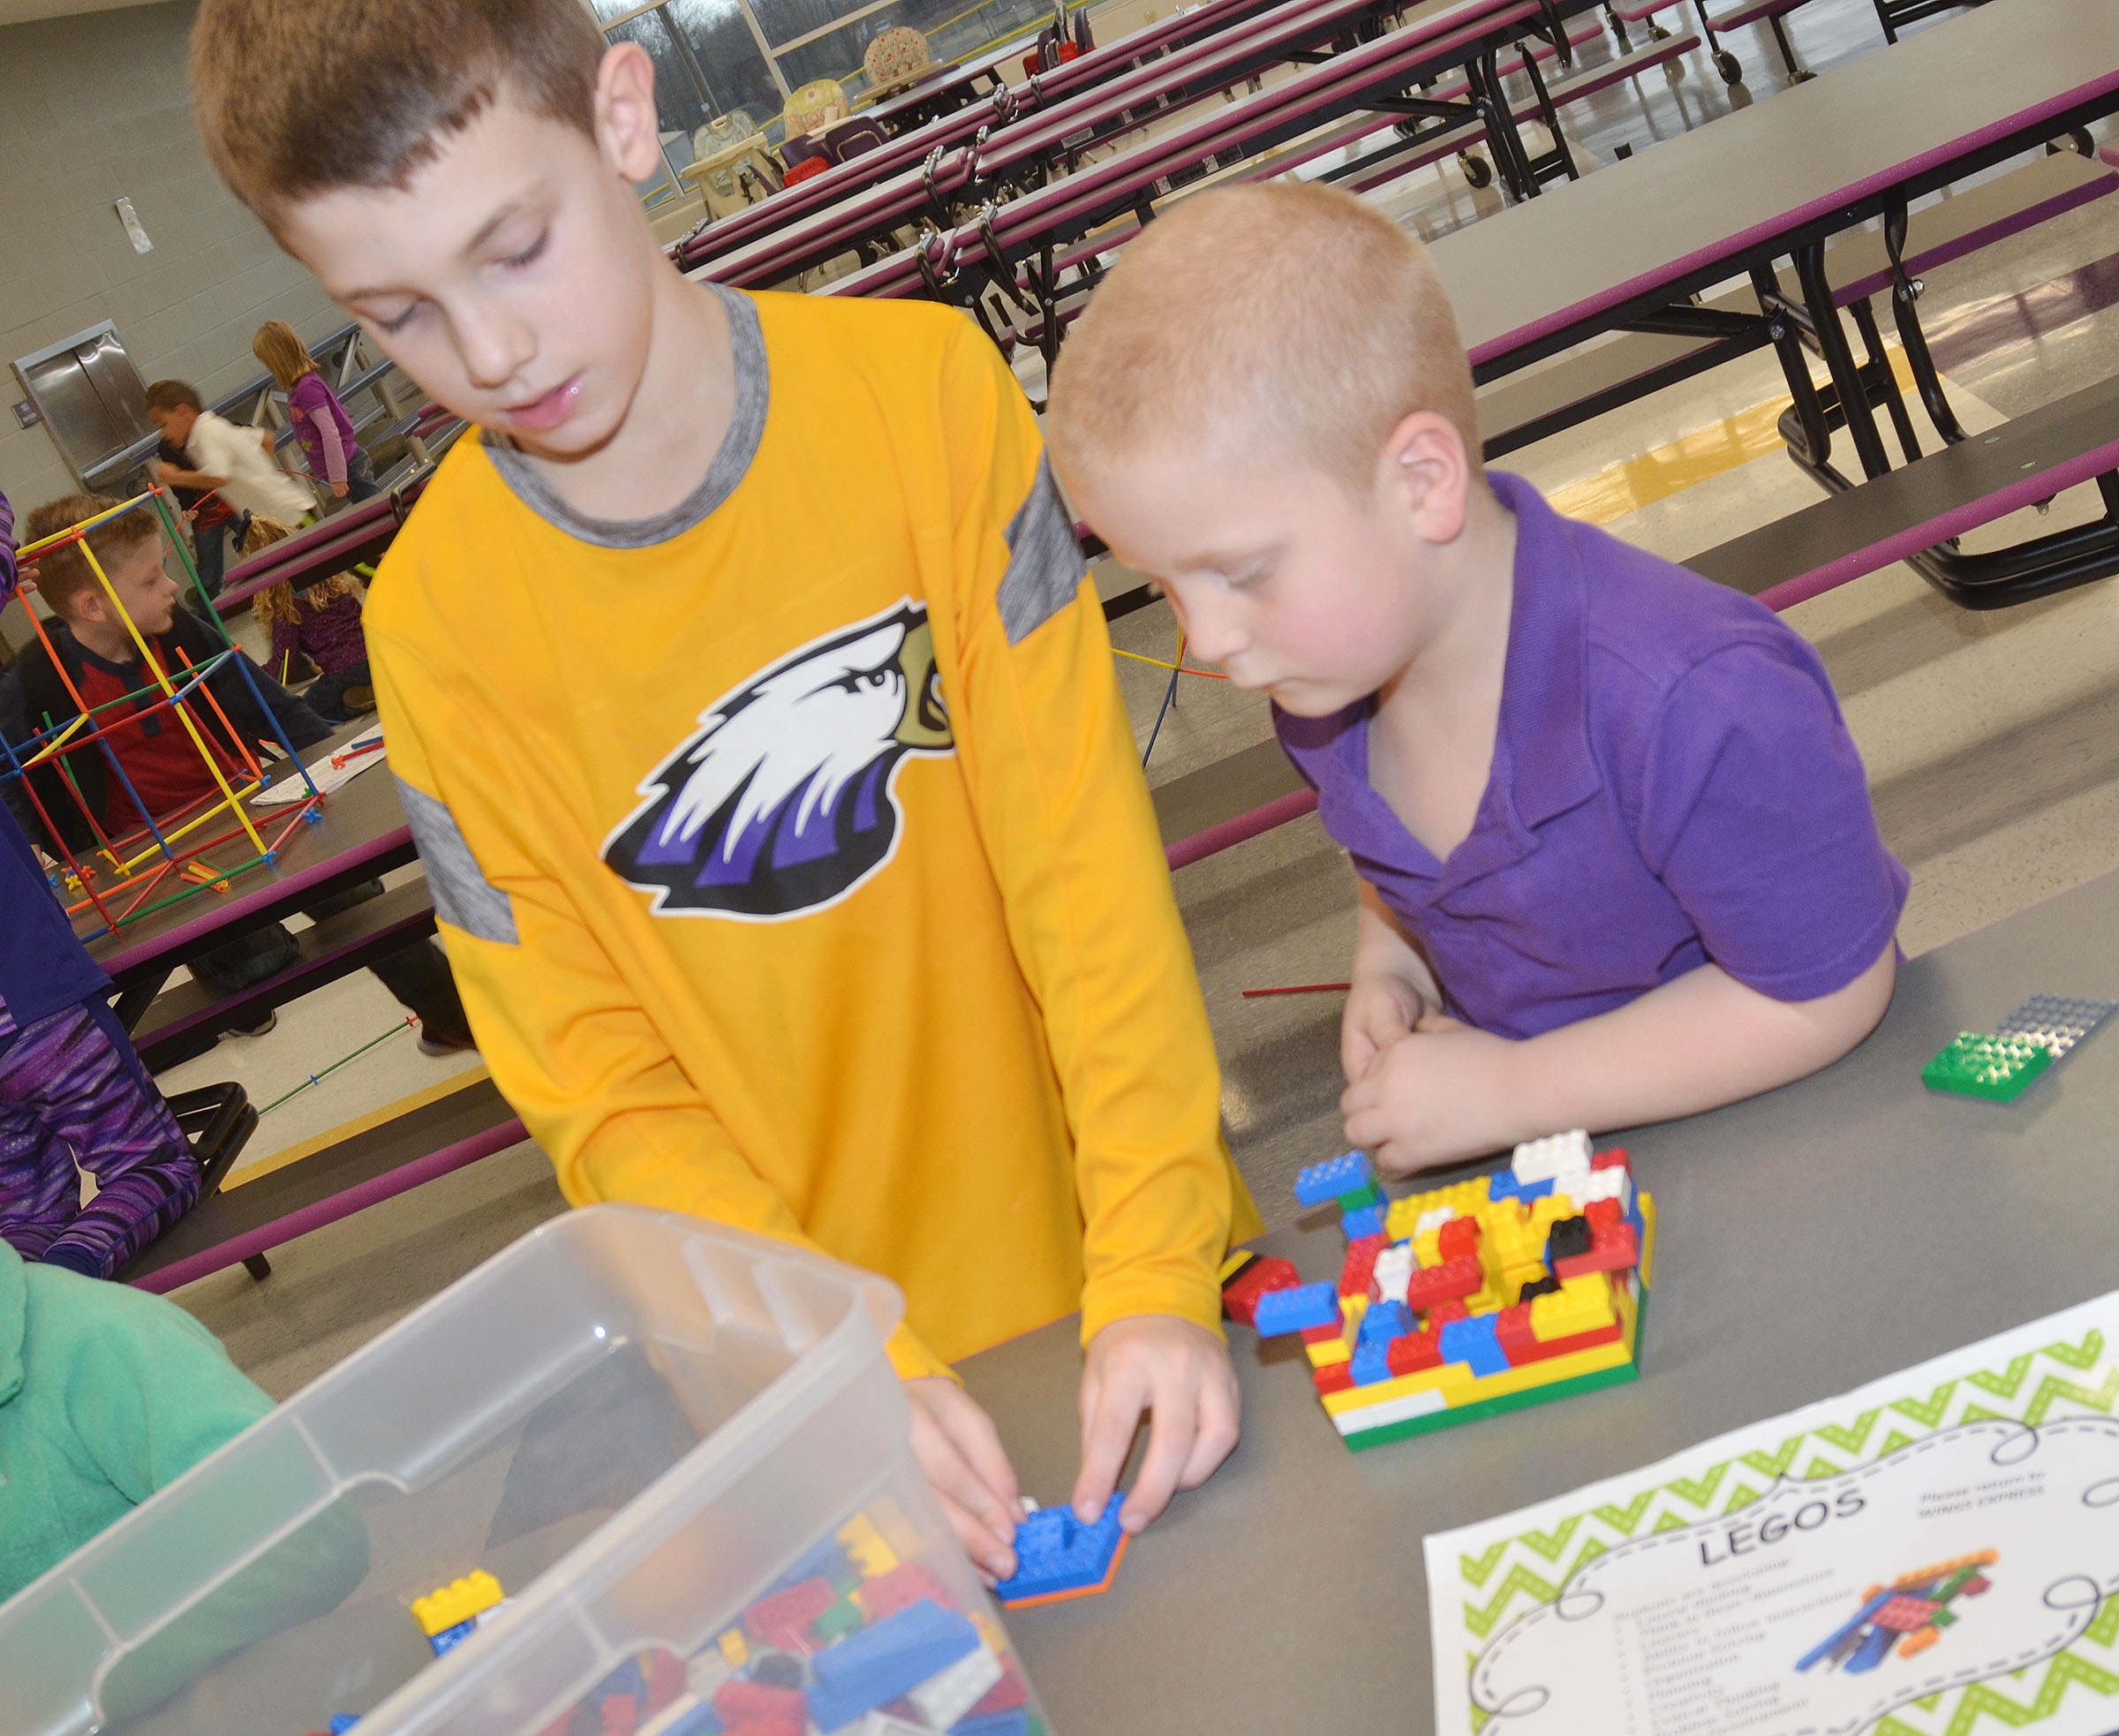 CES second-grader Aidan Wilson, at left, and first-grader Ben Parrott build with Legos.